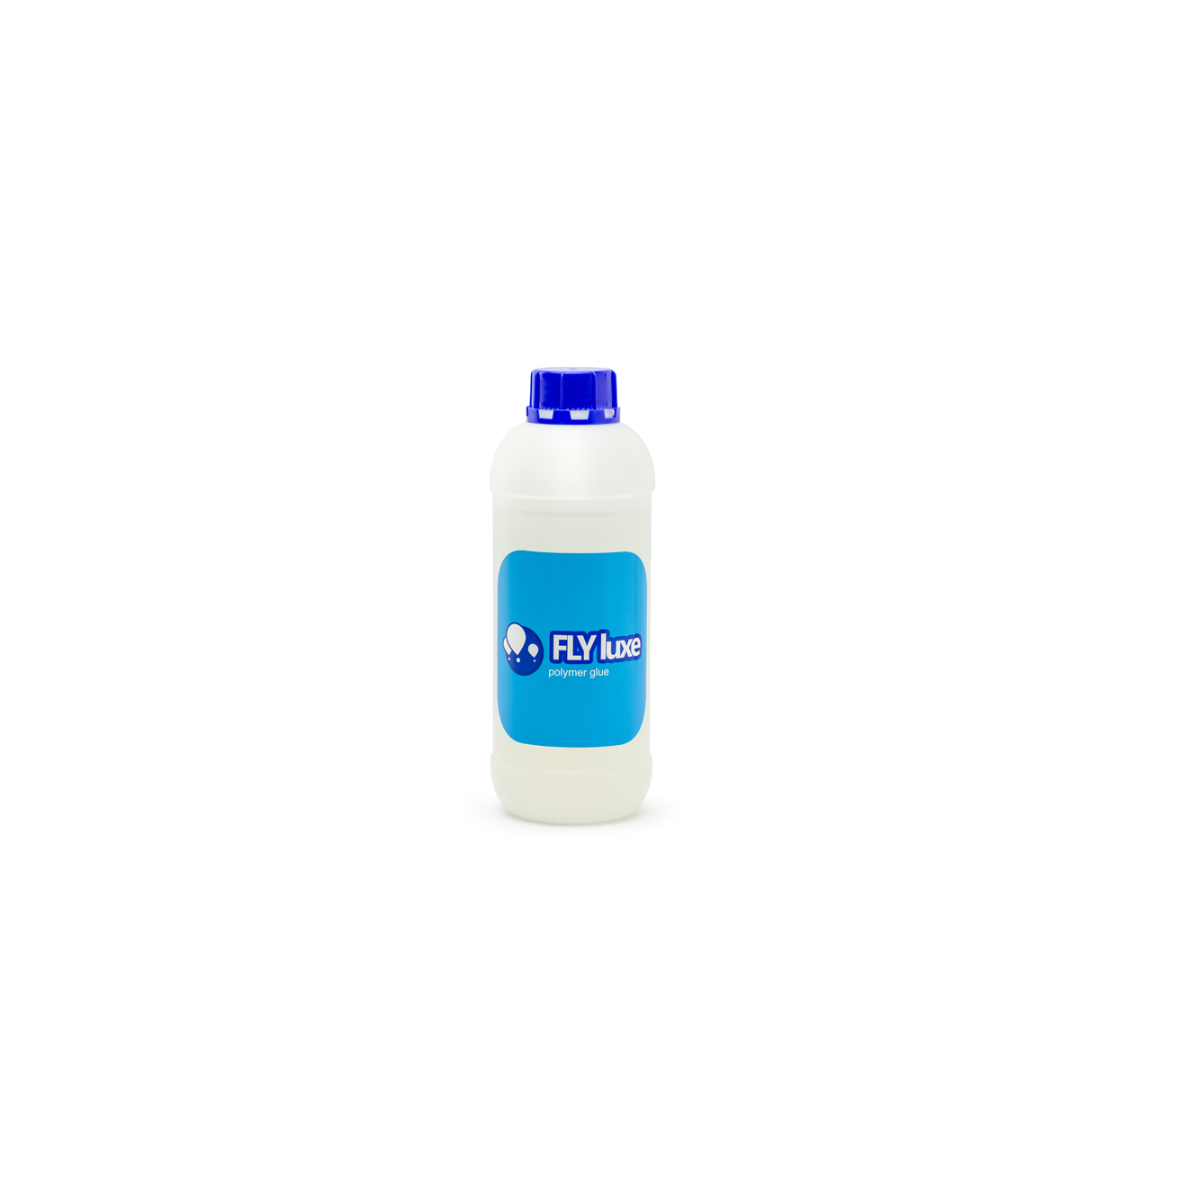 FLY Luxe 850ml.